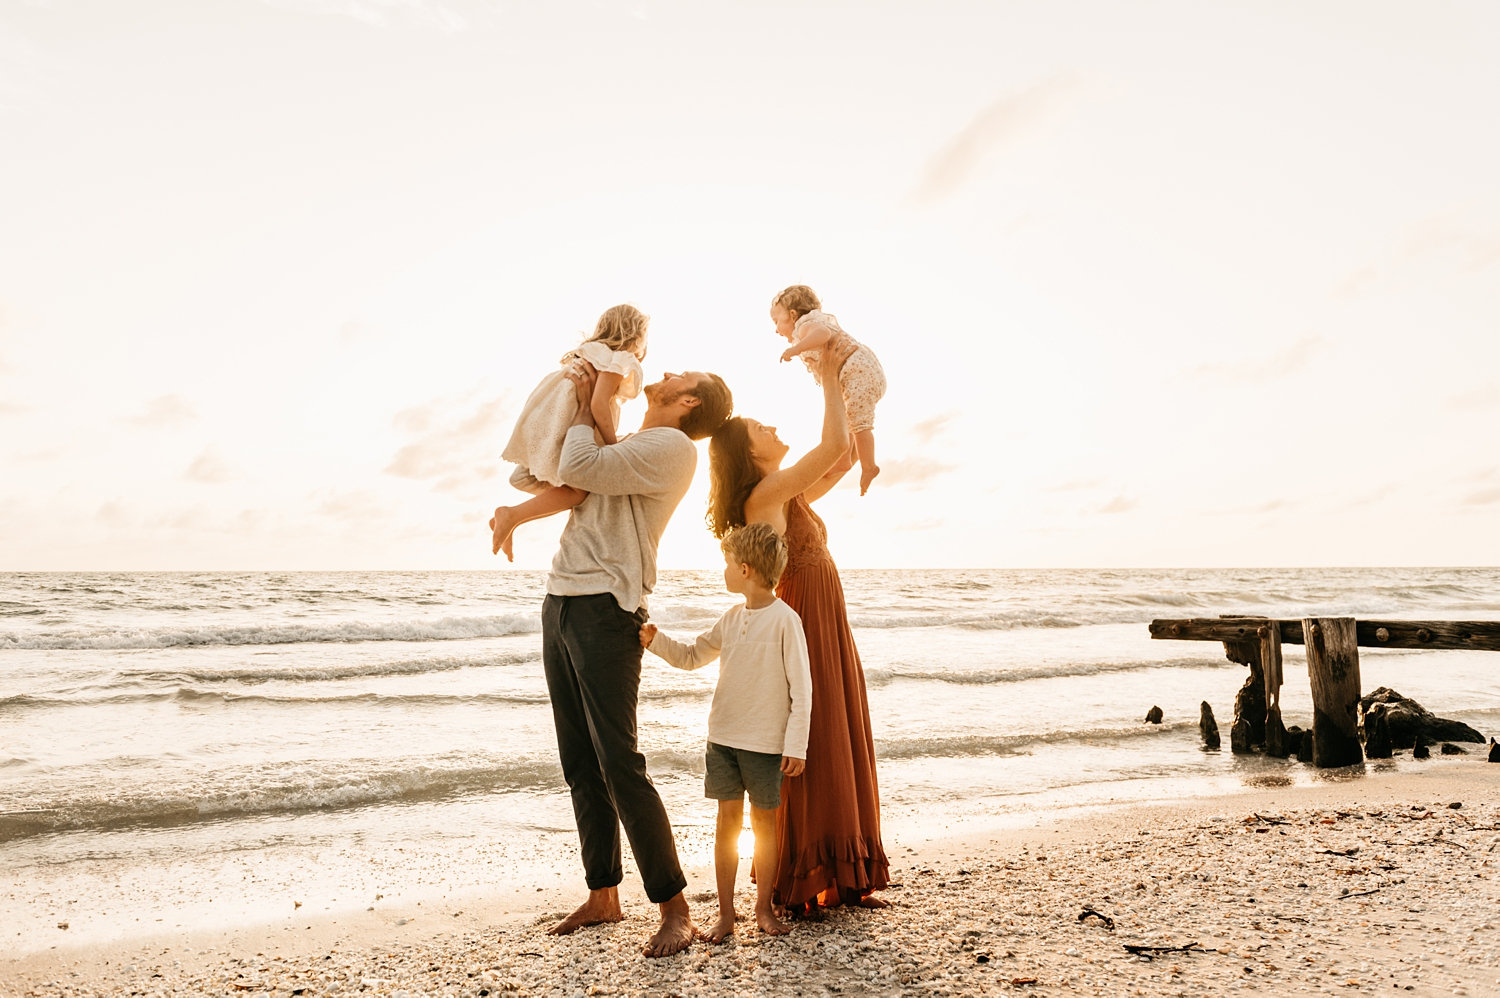 family of 5 beach pictures, family of 5 beach portraits, Naples Beach, Rya Duncklee